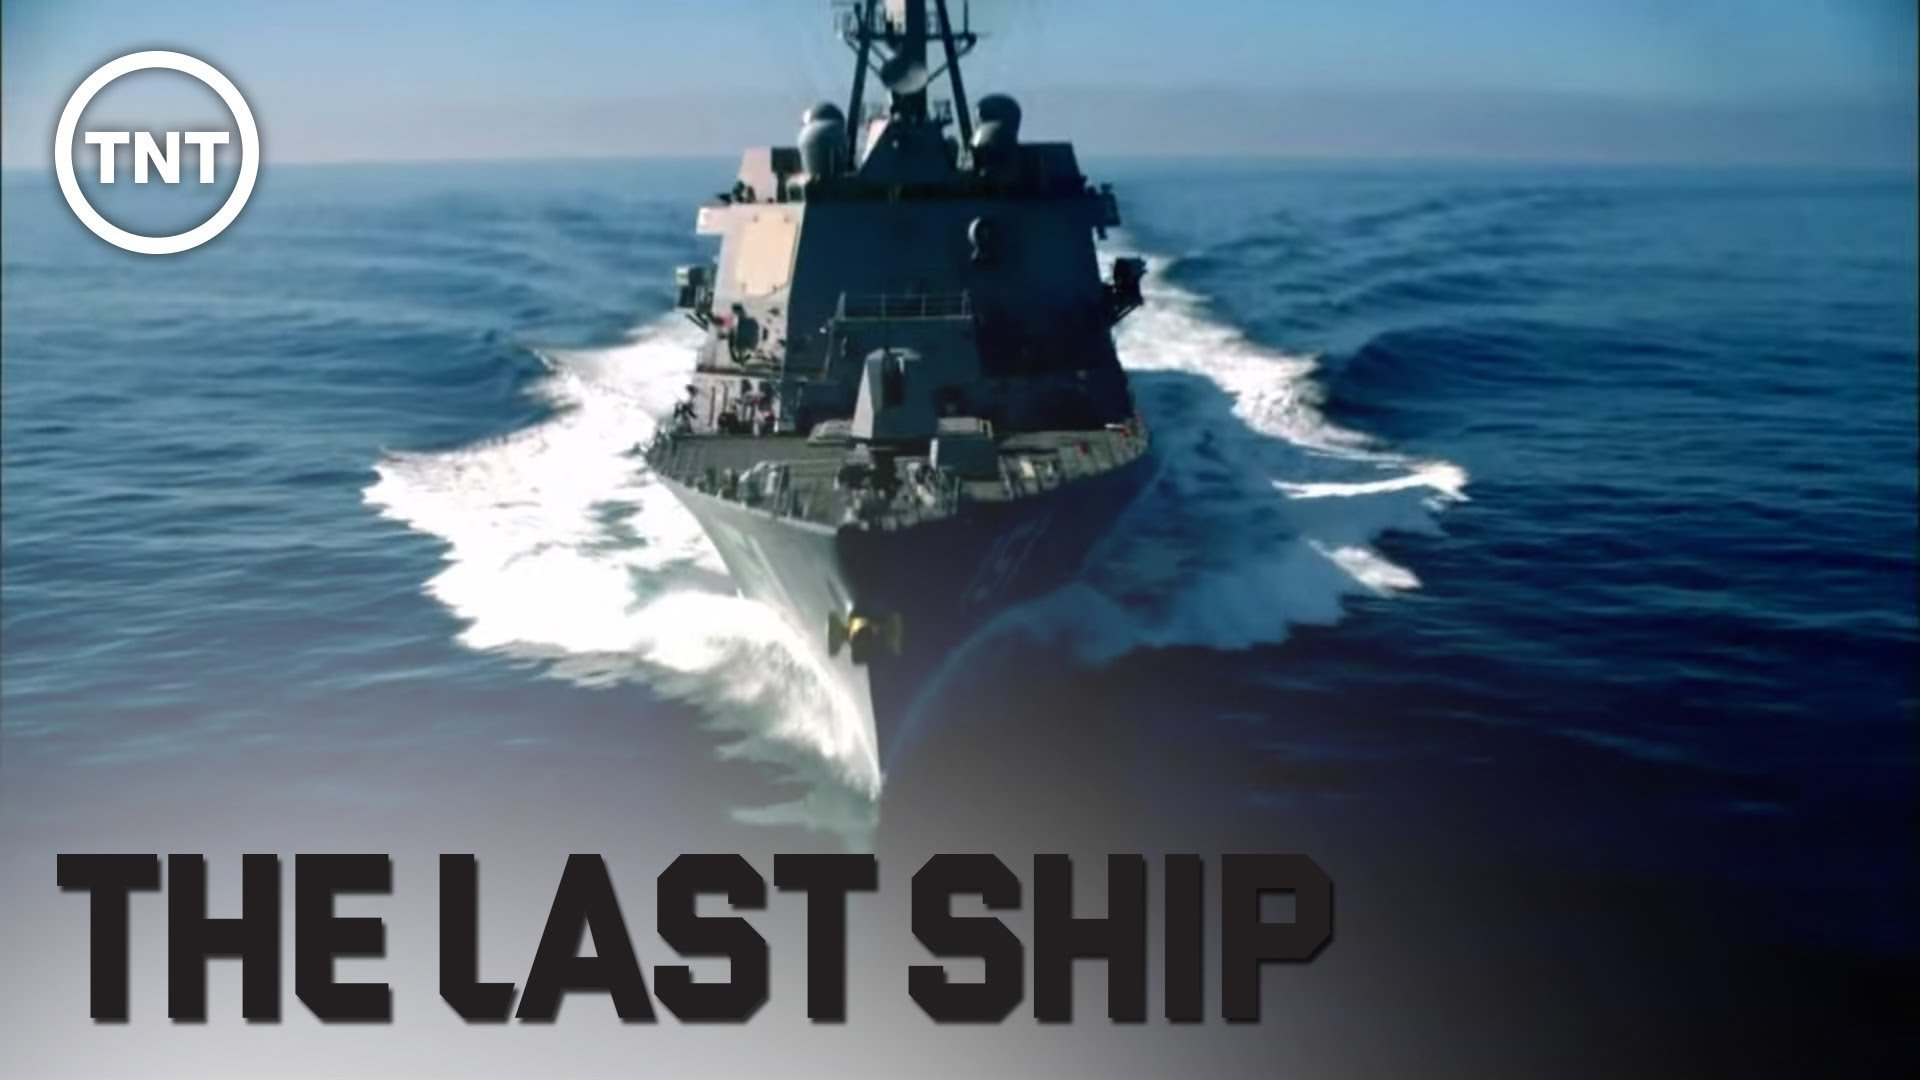 Ship Wallpapers HD Android Apps on Google Play